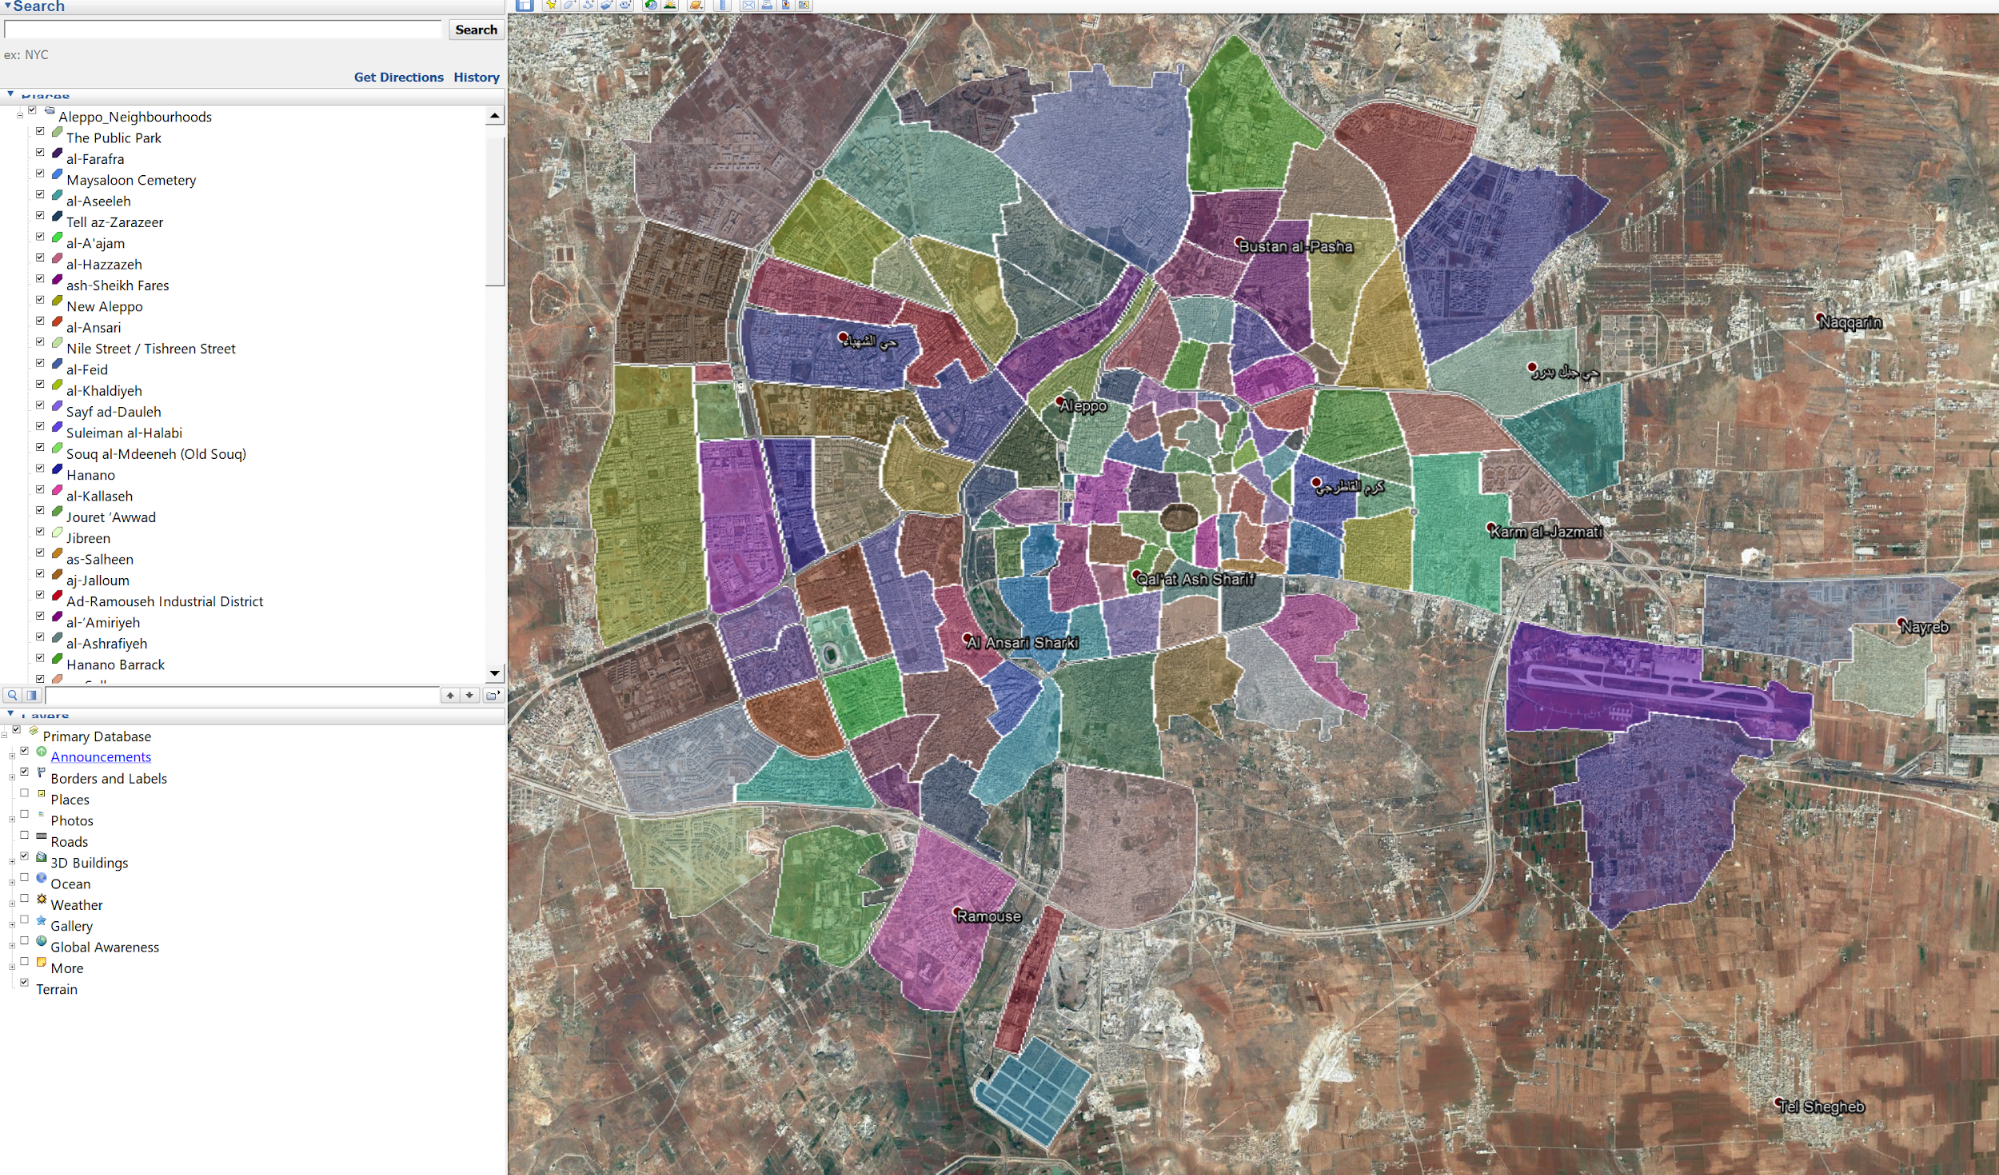 bellingcat - How to Scrape Interactive Geospatial Data